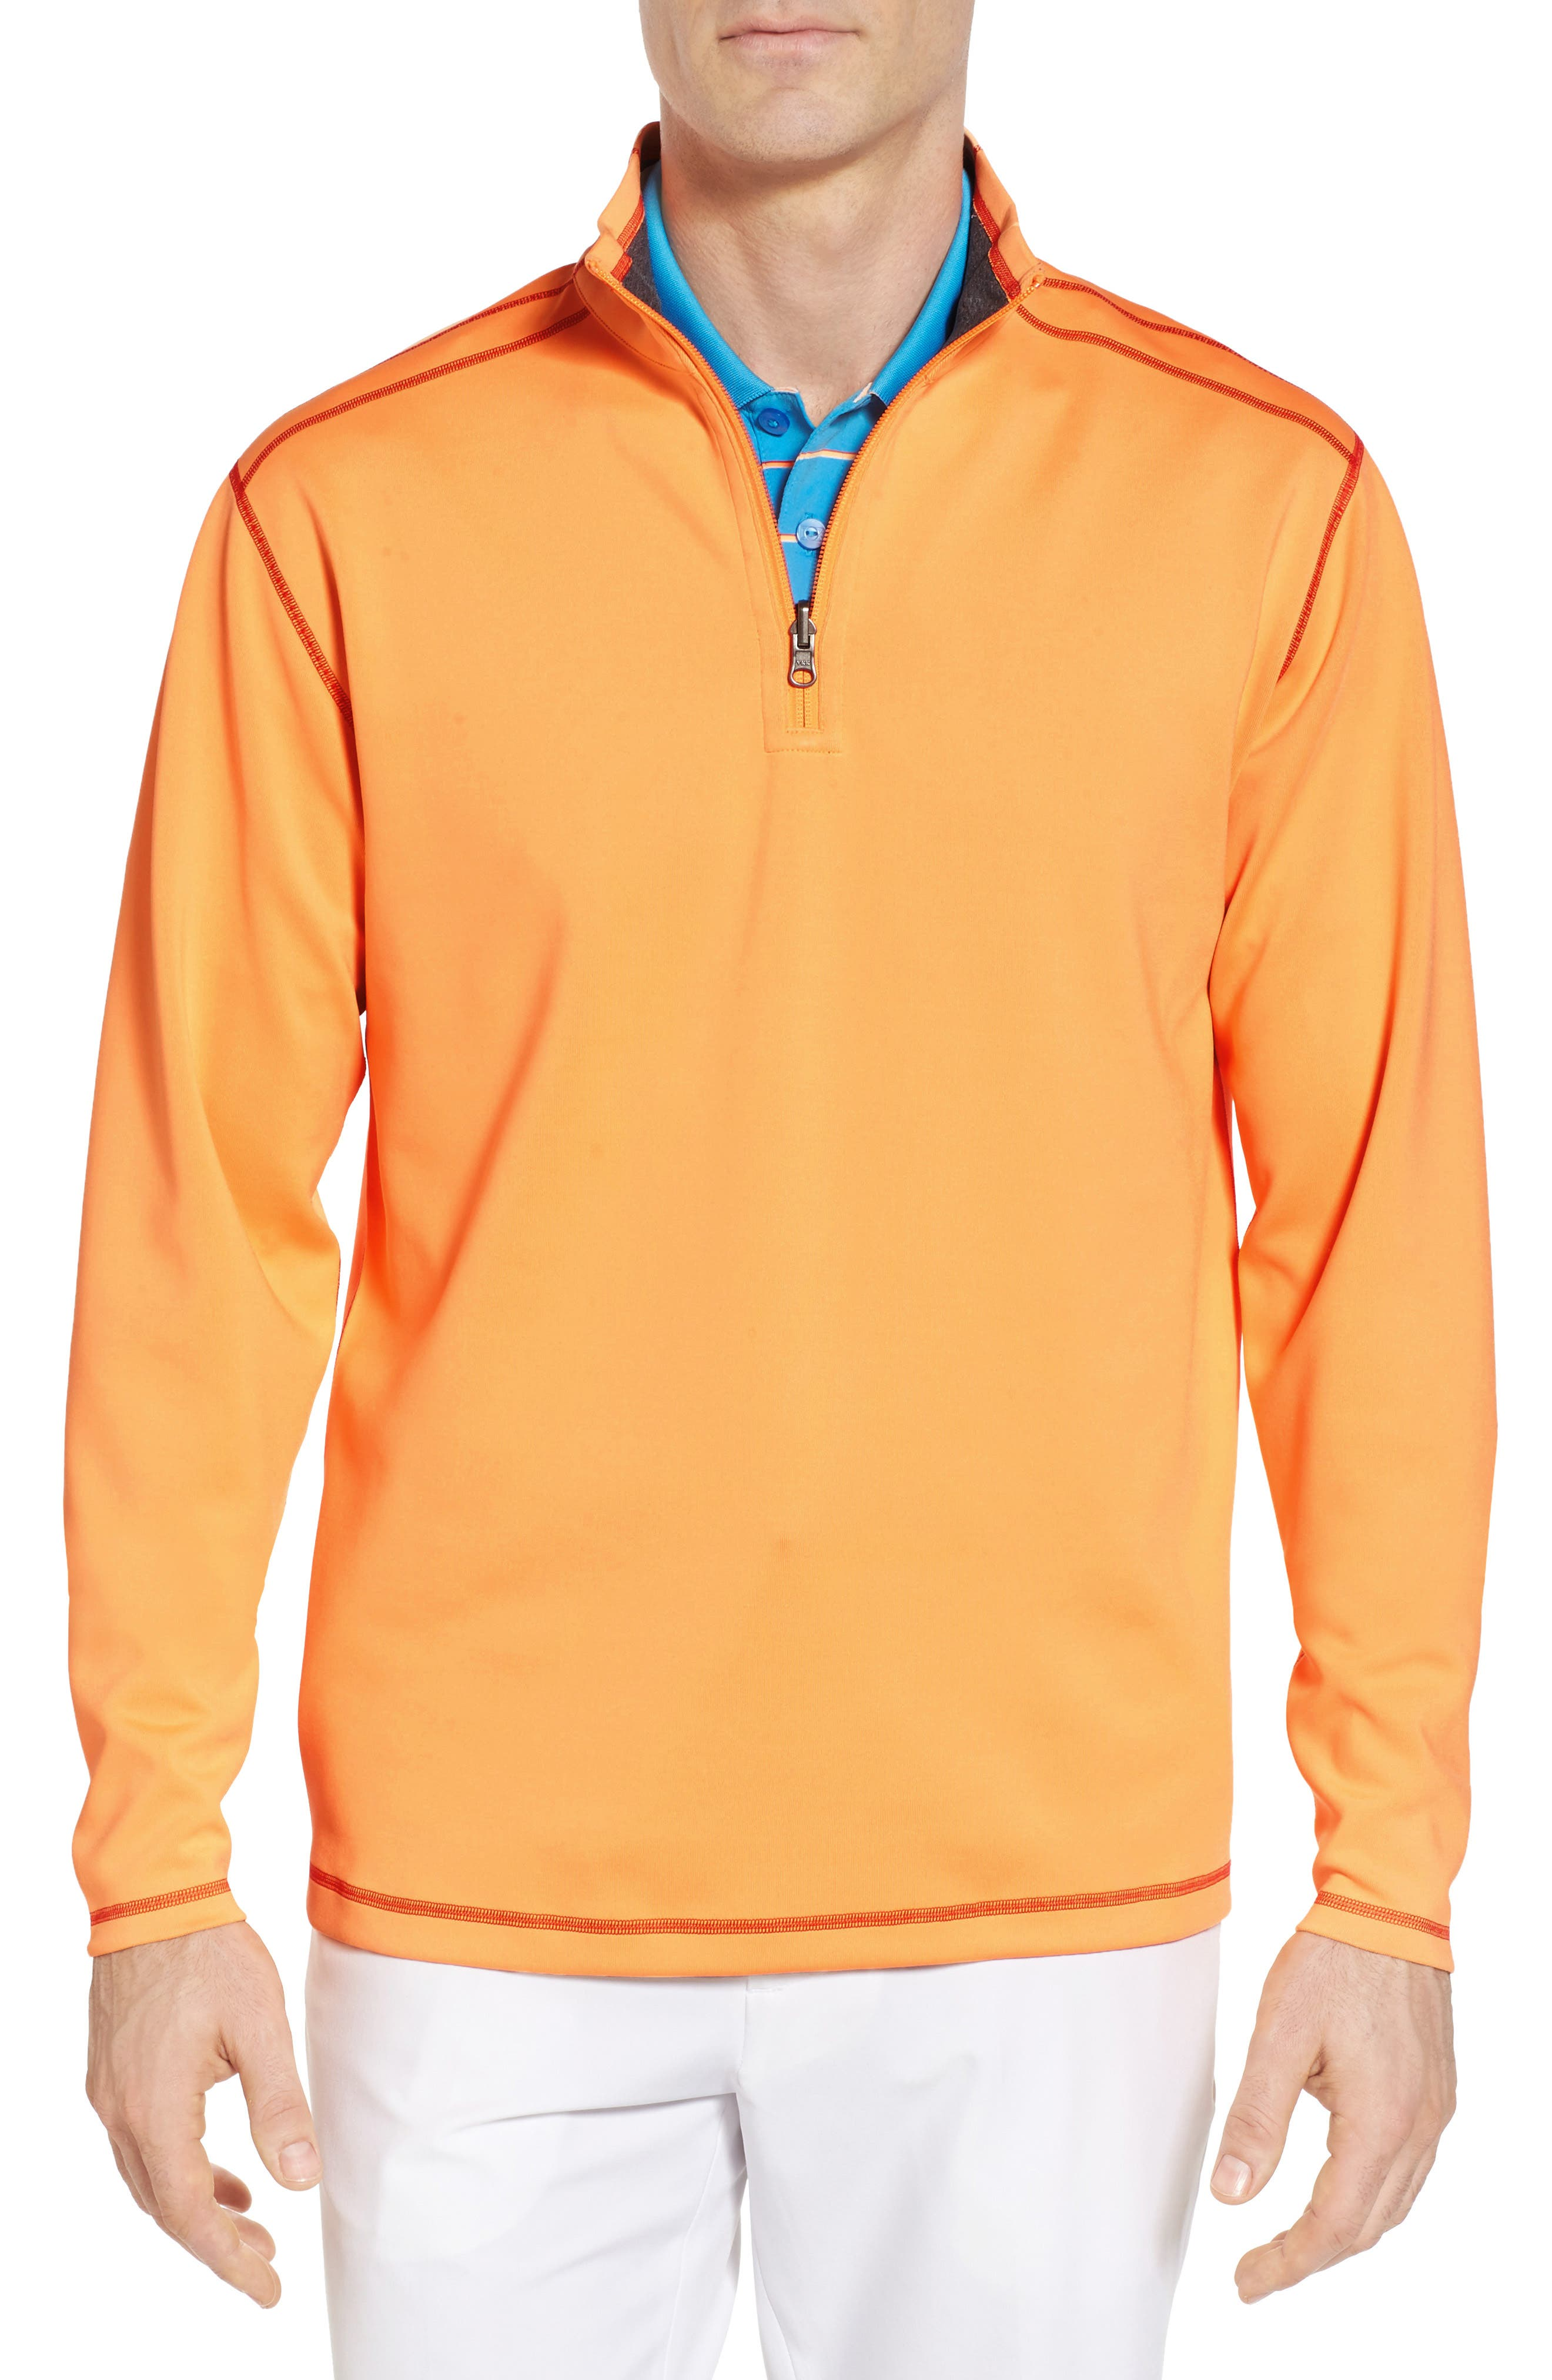 Evergreen Classic Fit DryTec Reversible Half Zip Pullover,                             Main thumbnail 1, color,                             Clarity